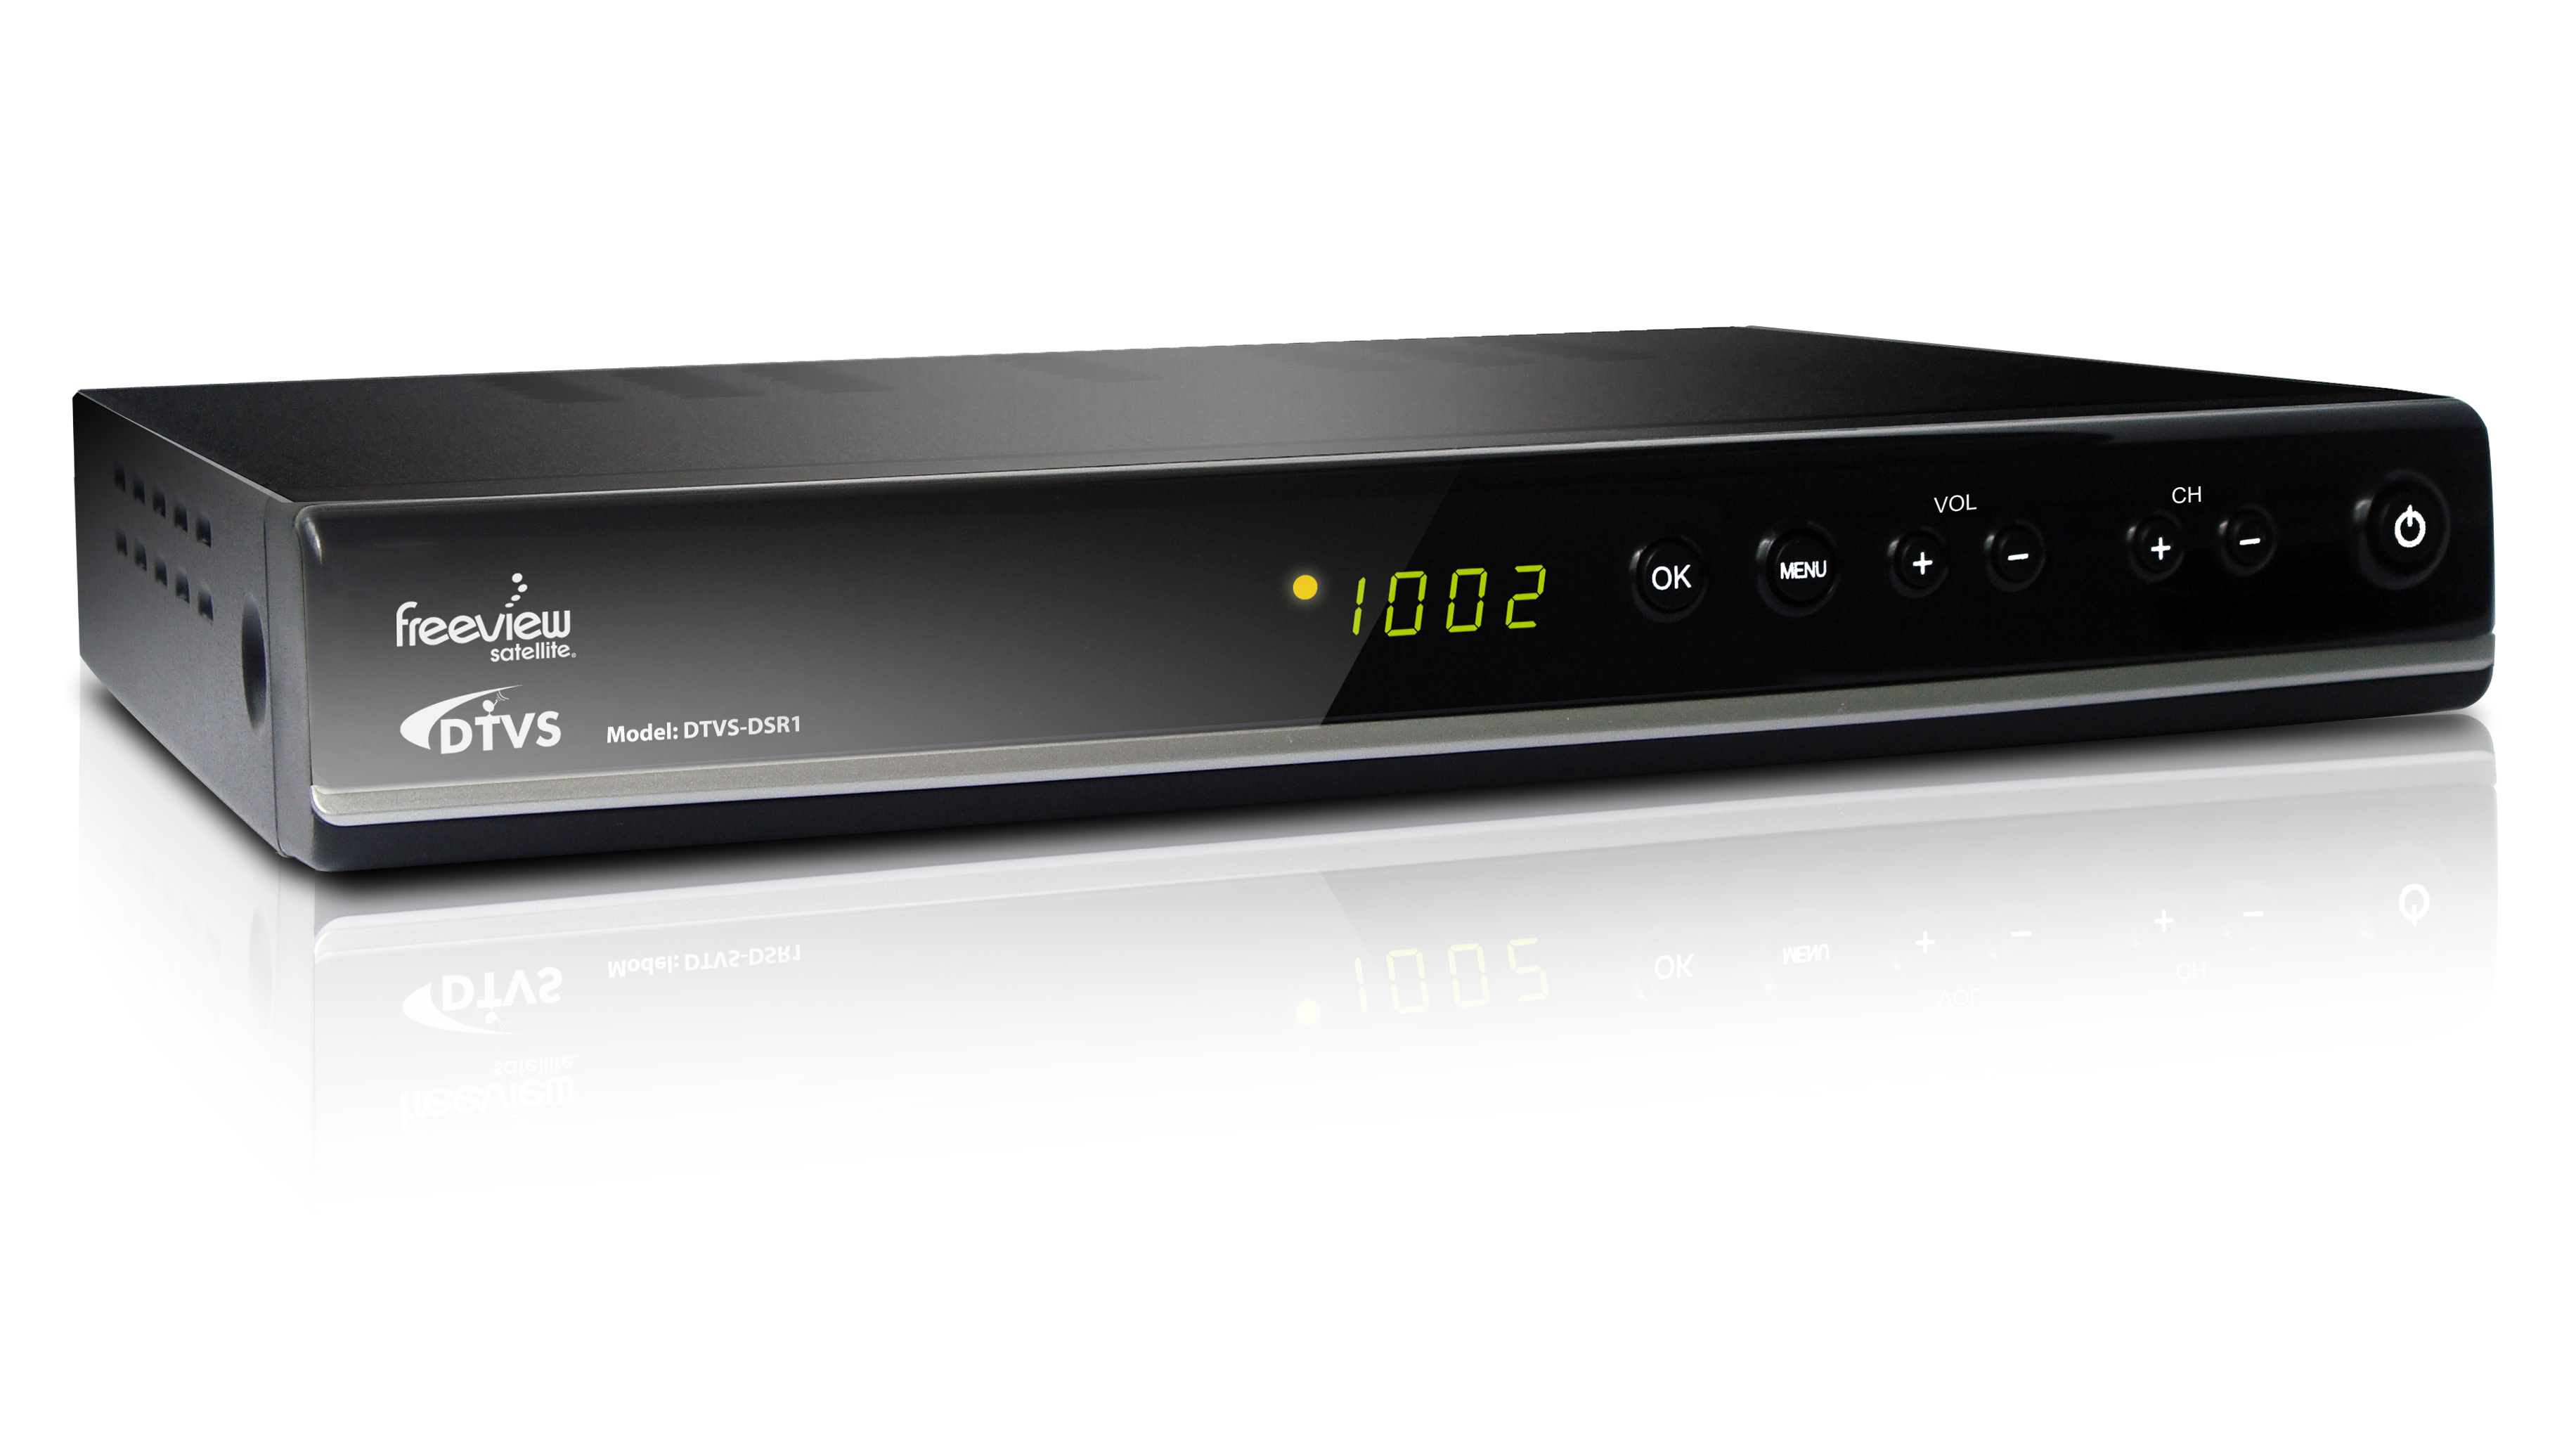 freeview dvb s2 satellite receiver with hdmi pvr repaired. Black Bedroom Furniture Sets. Home Design Ideas